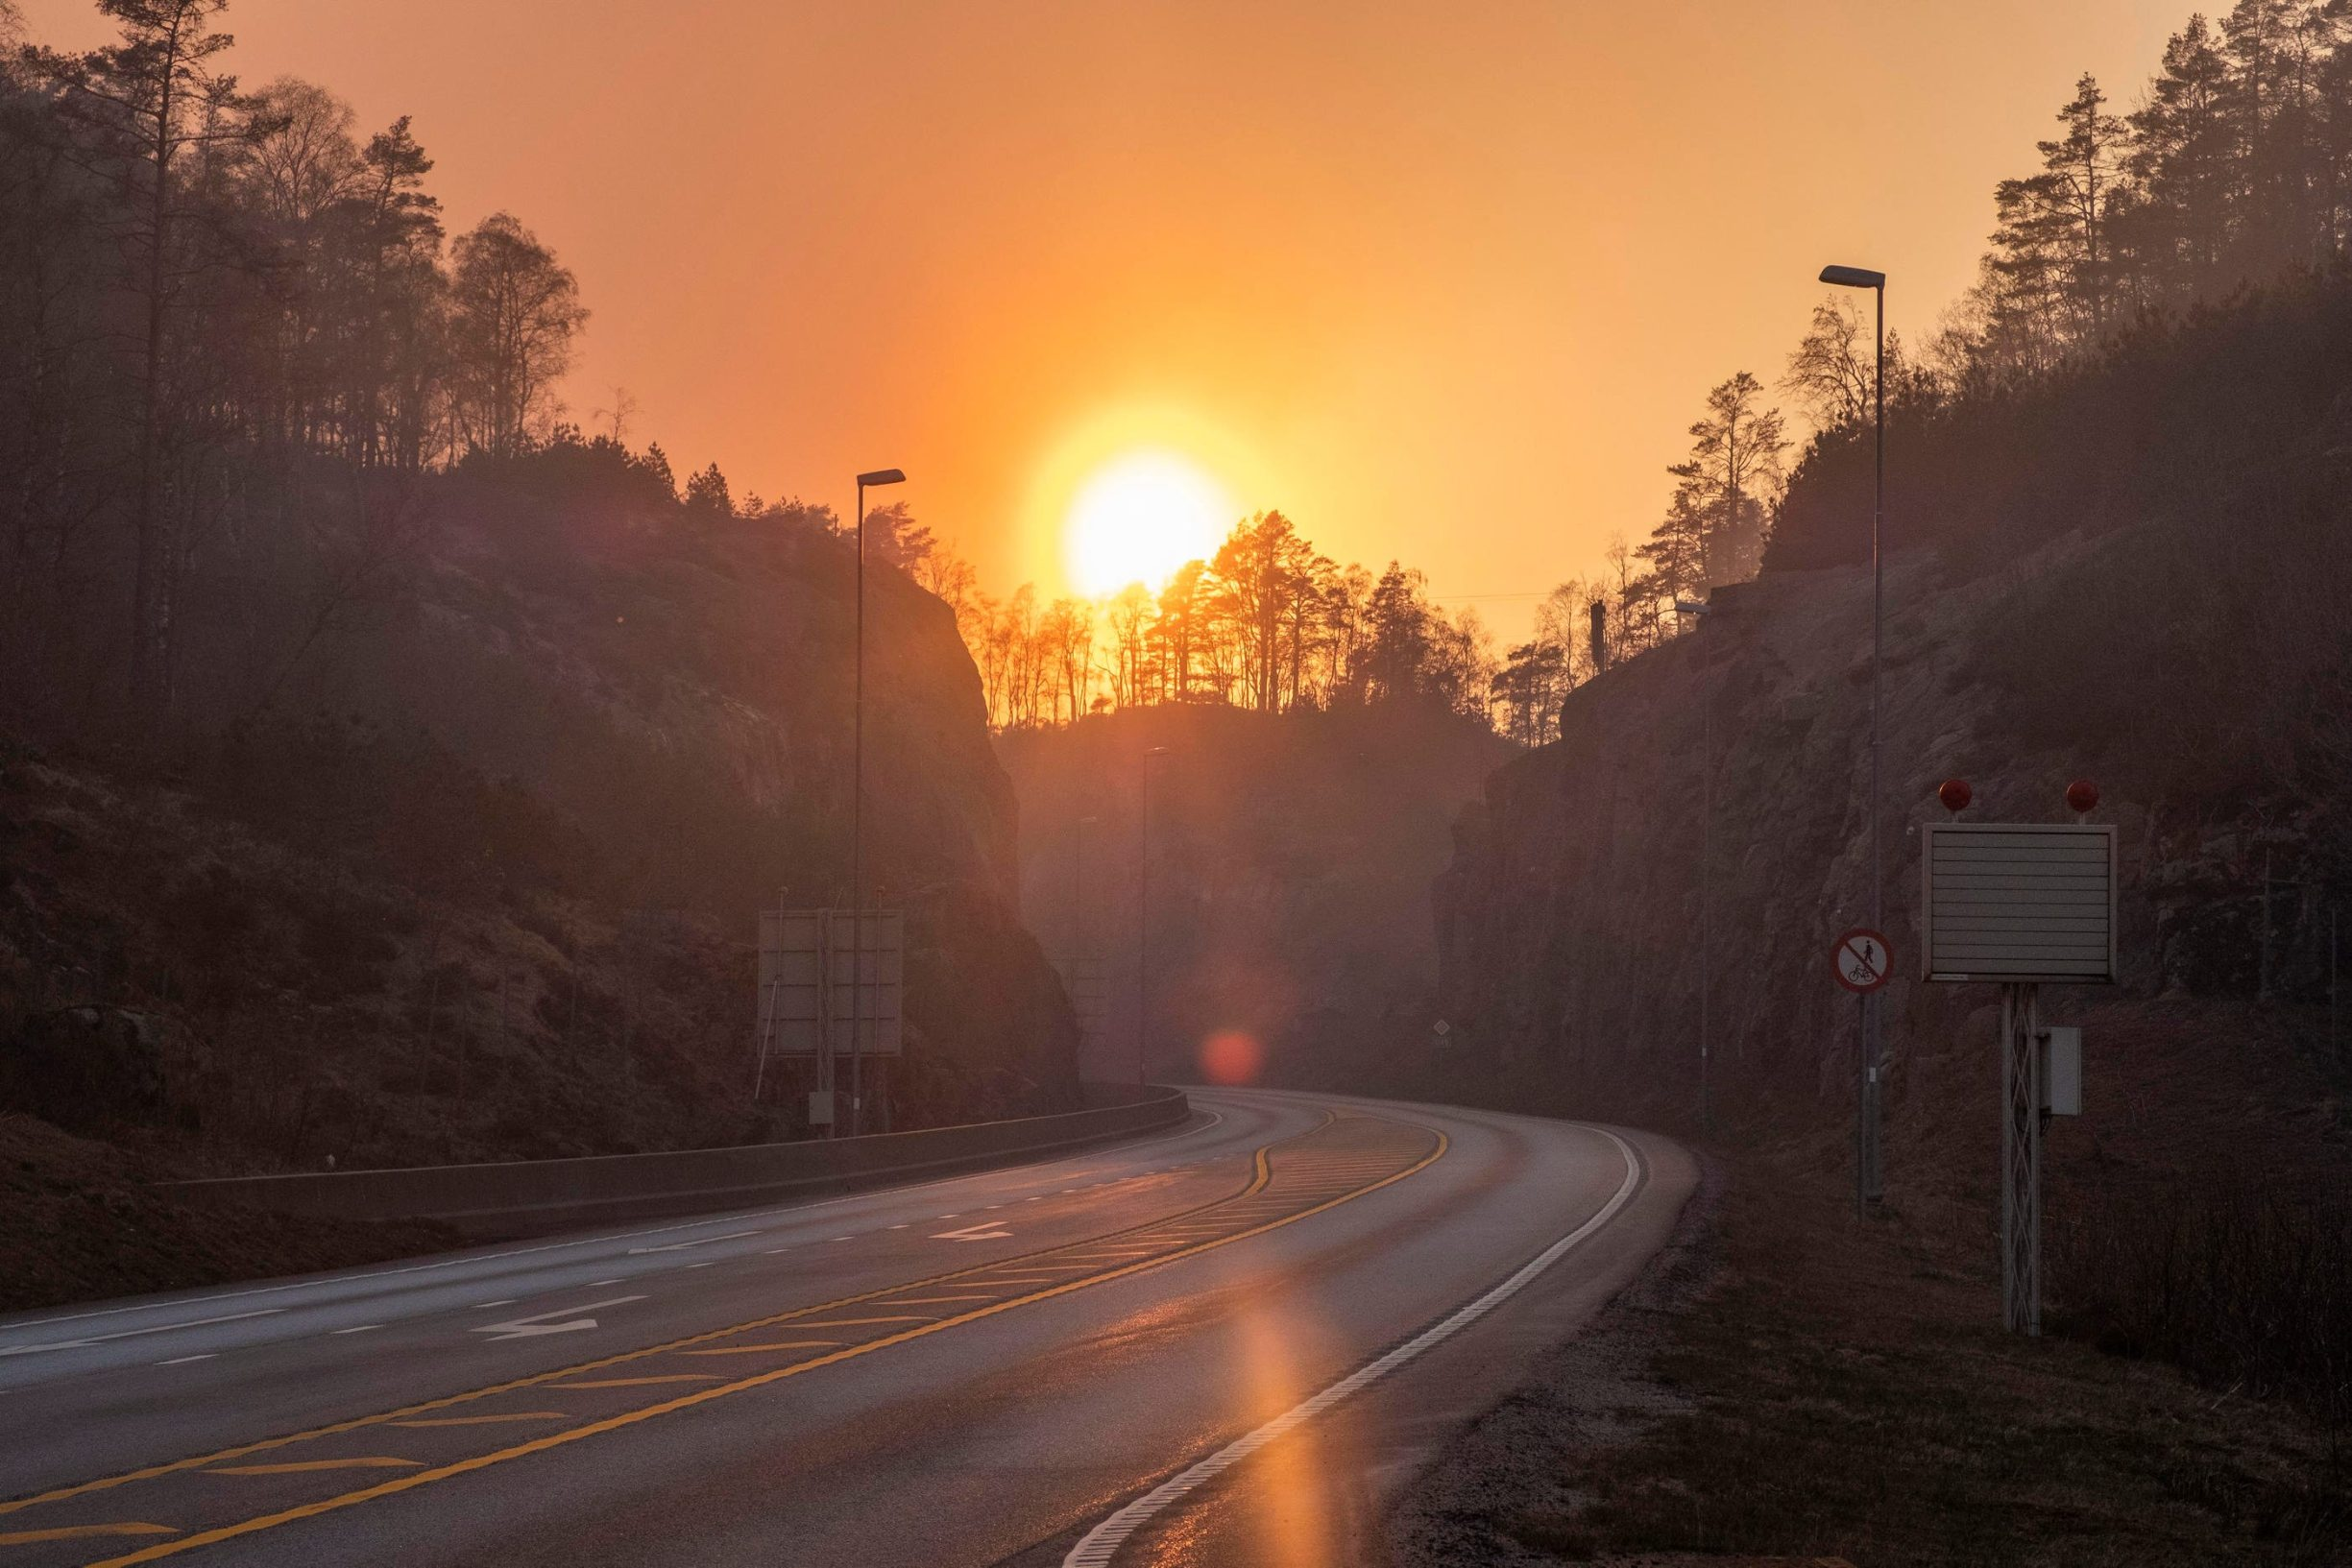 The smoke hangs along the road over Kvinesdalsheia mountain area as the forest fires broke in southern Norway, April 23, 2019. NTB Scanpix/Tor Erik Schroeder via REUTERS   ATTENTION EDITORS - THIS IMAGE WAS PROVIDED BY A THIRD PARTY. NORWAY OUT. NO COMMERCIAL OR EDITORIAL SALES IN NORWAY.